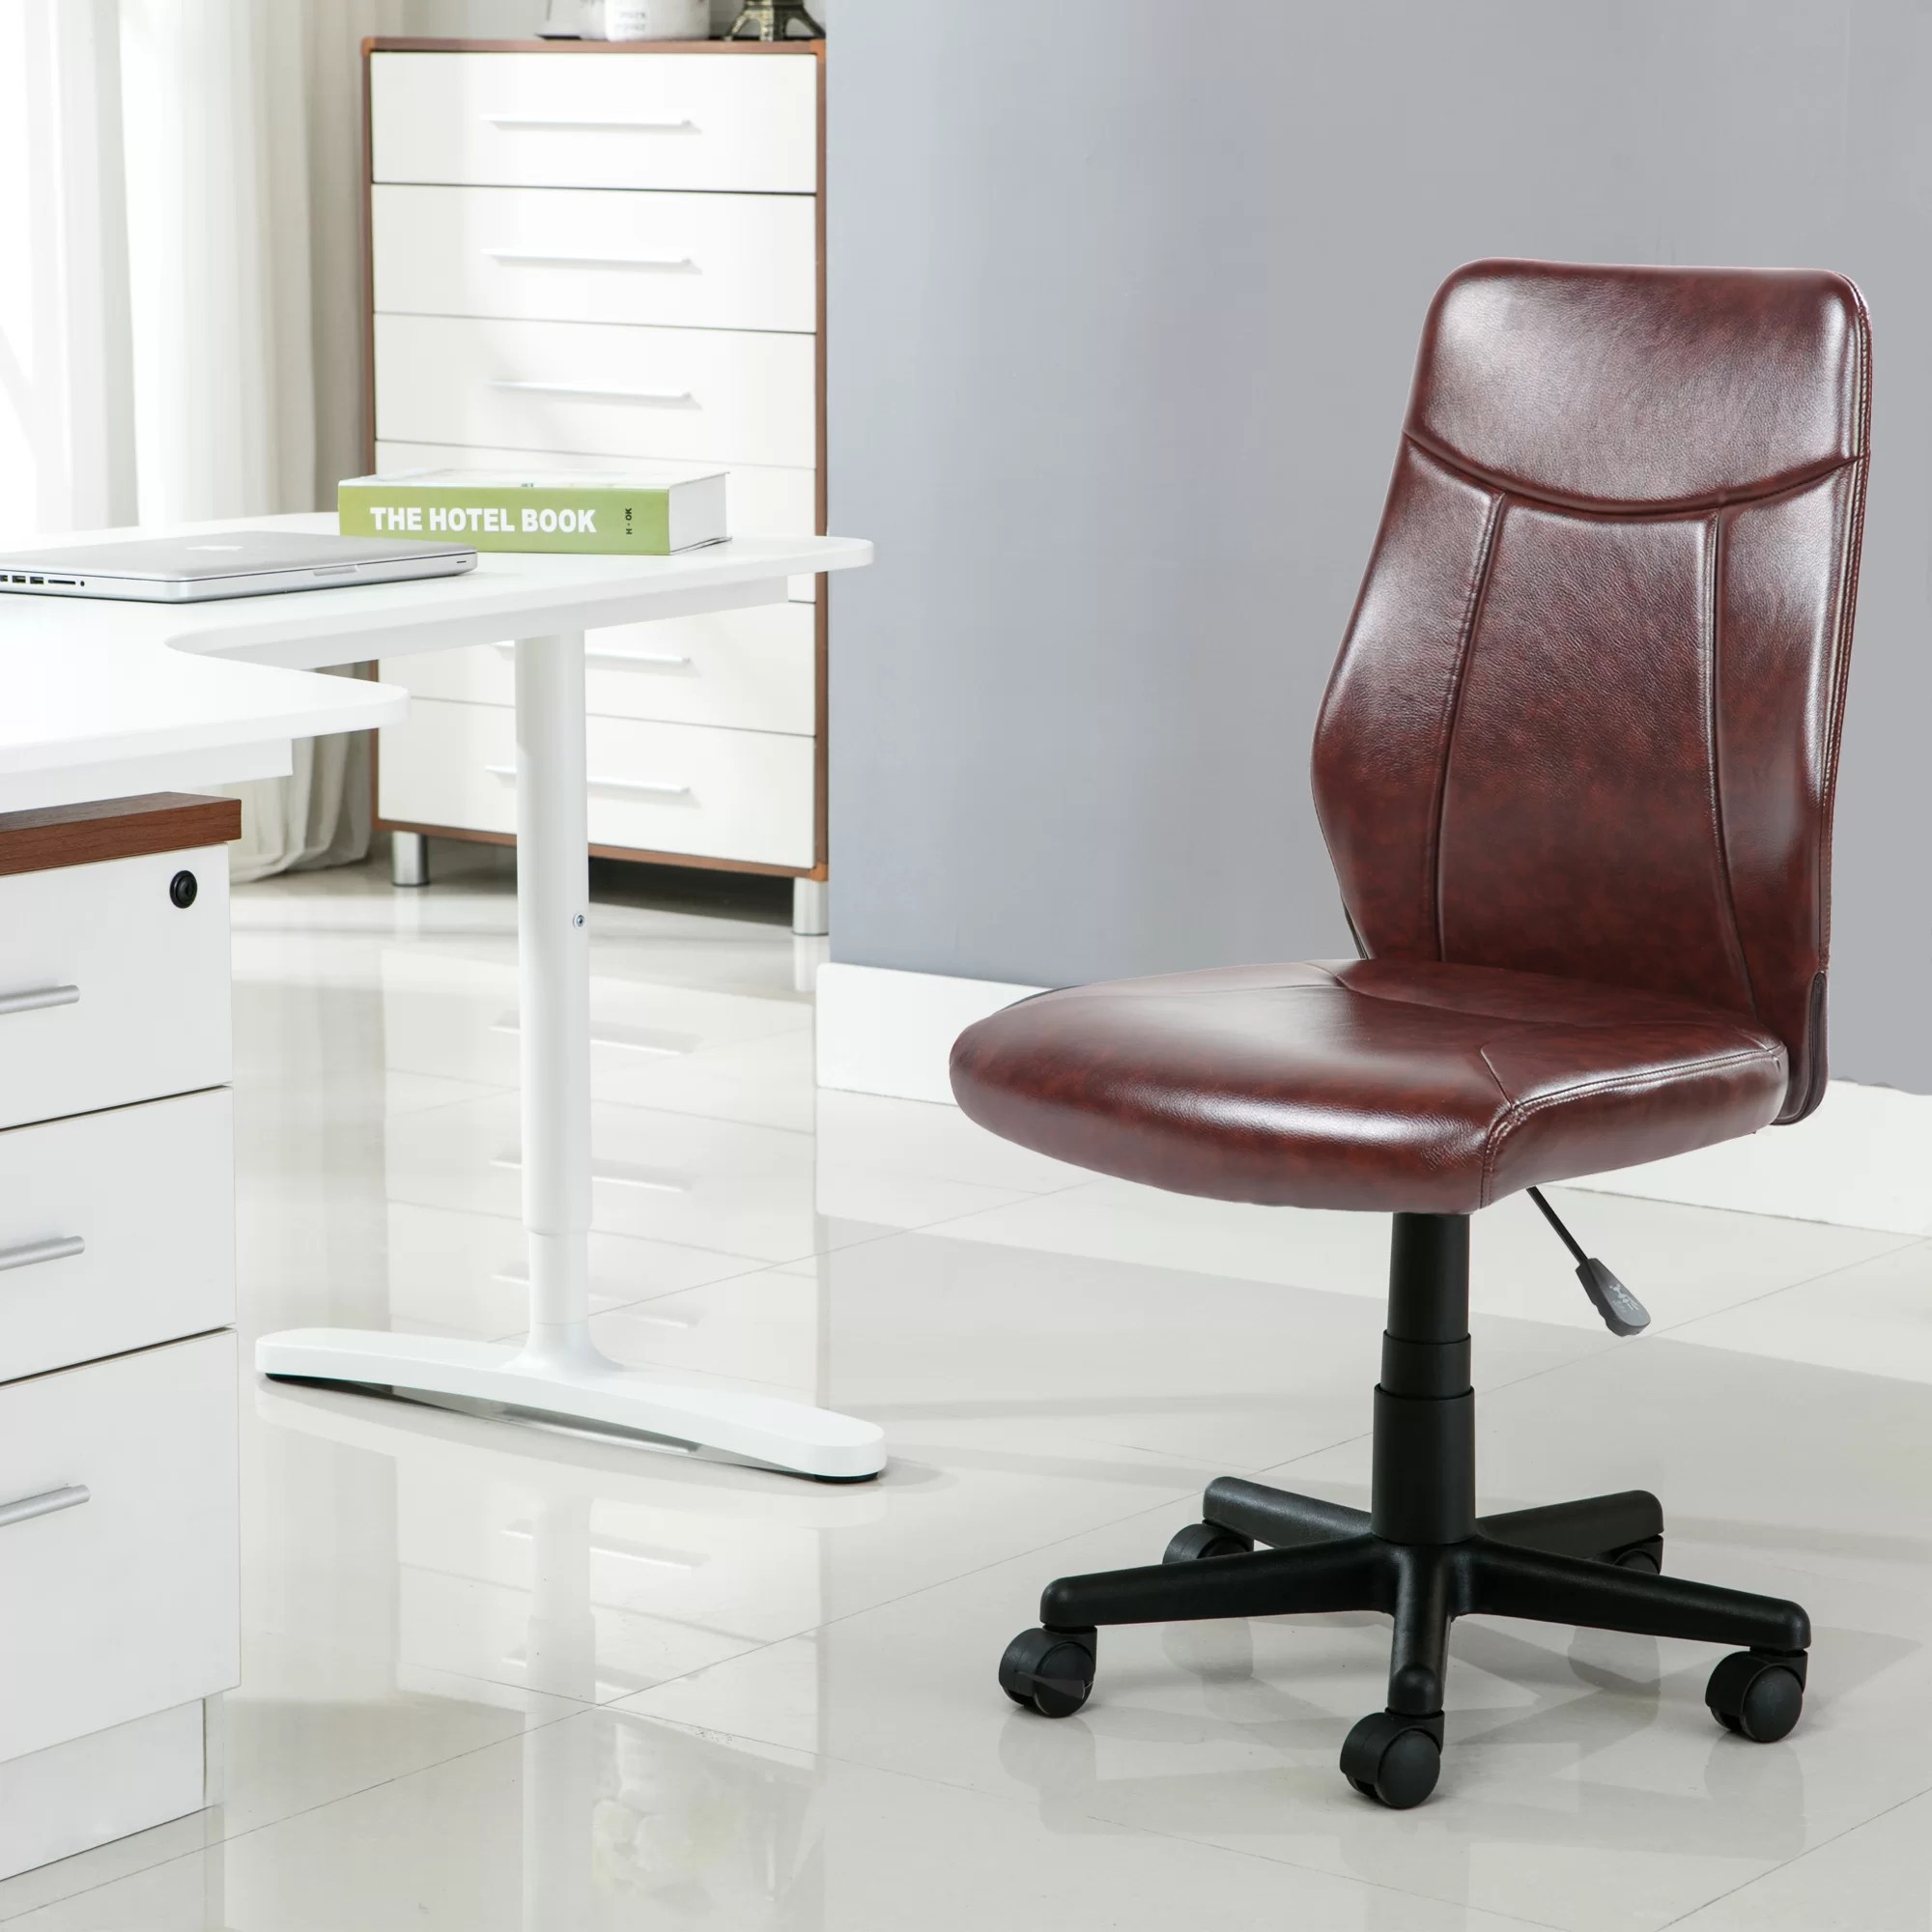 Desk Seat High Back Kids Desk Chair